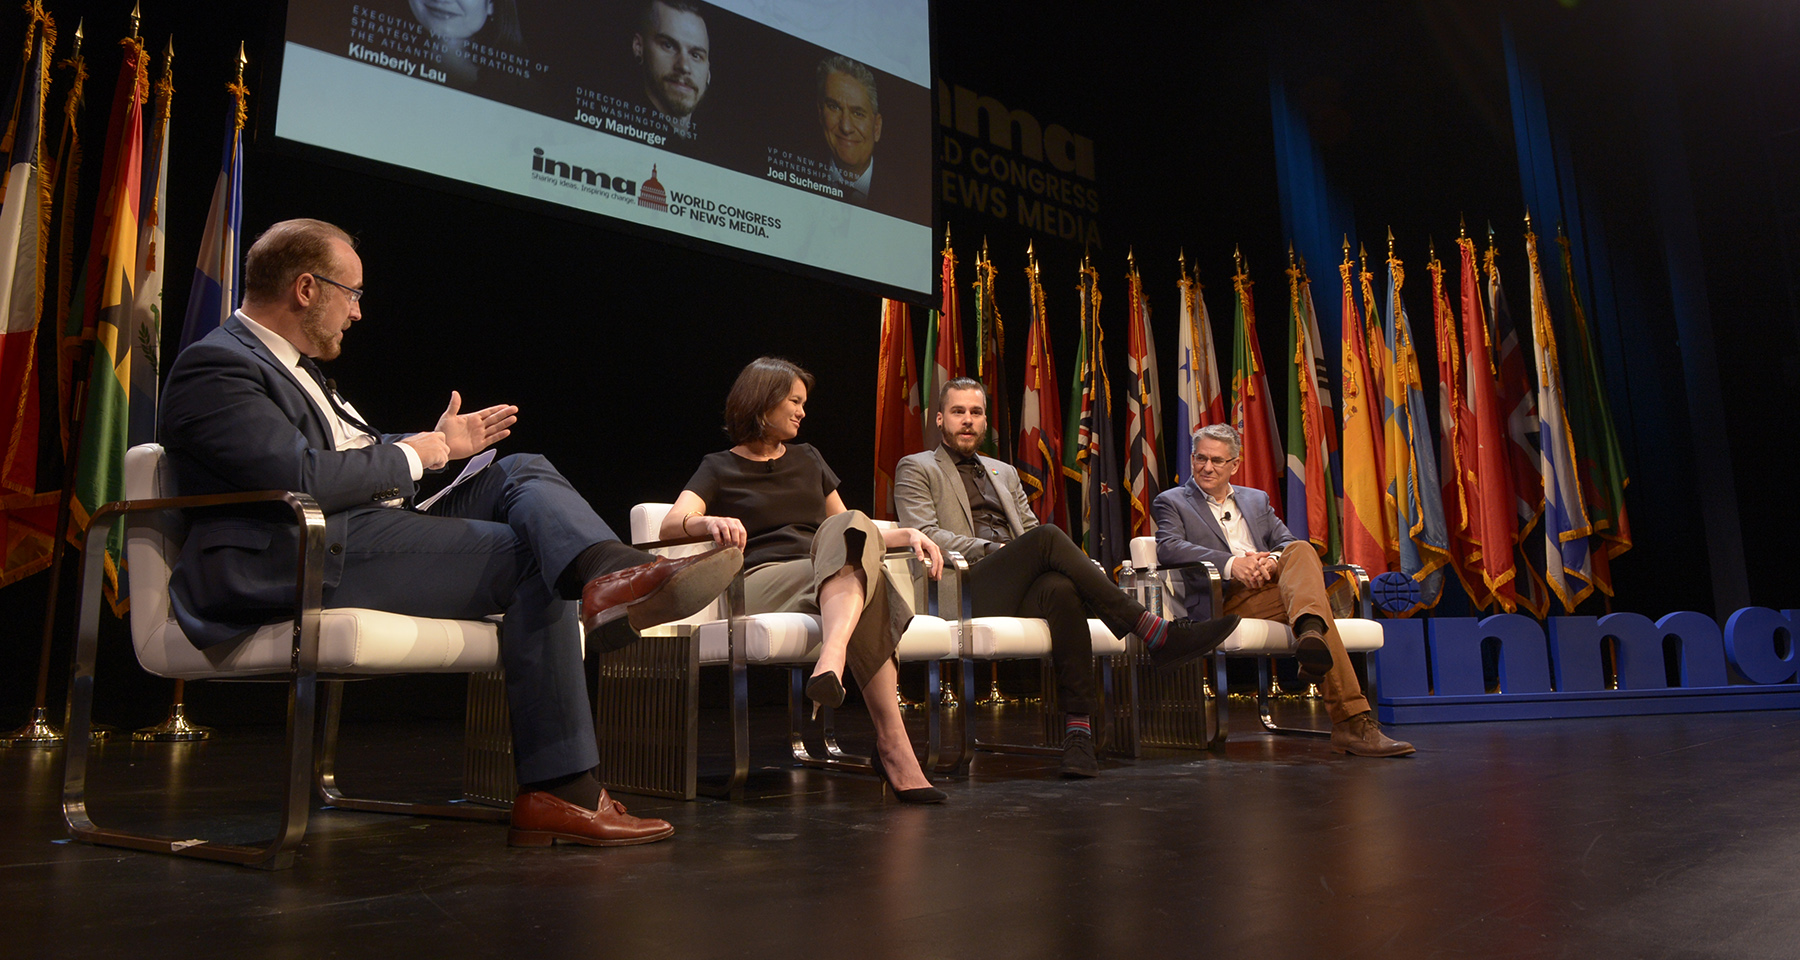 NPR, Washington Post, Atlantic look at future mobile opportunities